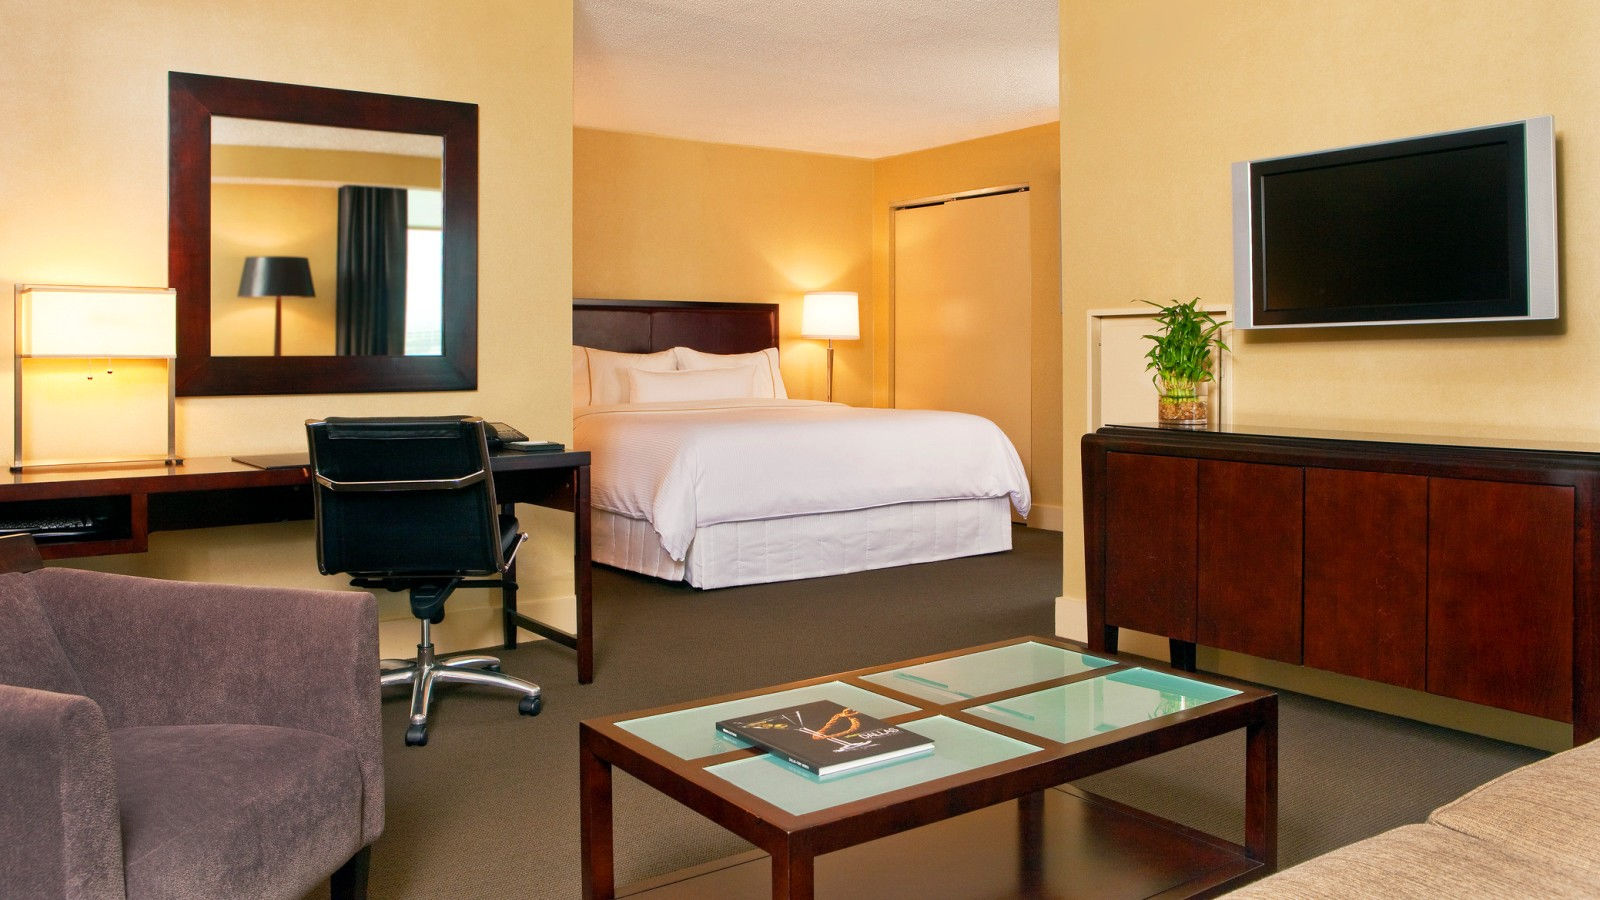 Executive Corner Suite Rooms - The Westin Dallas Fort Worth Airport